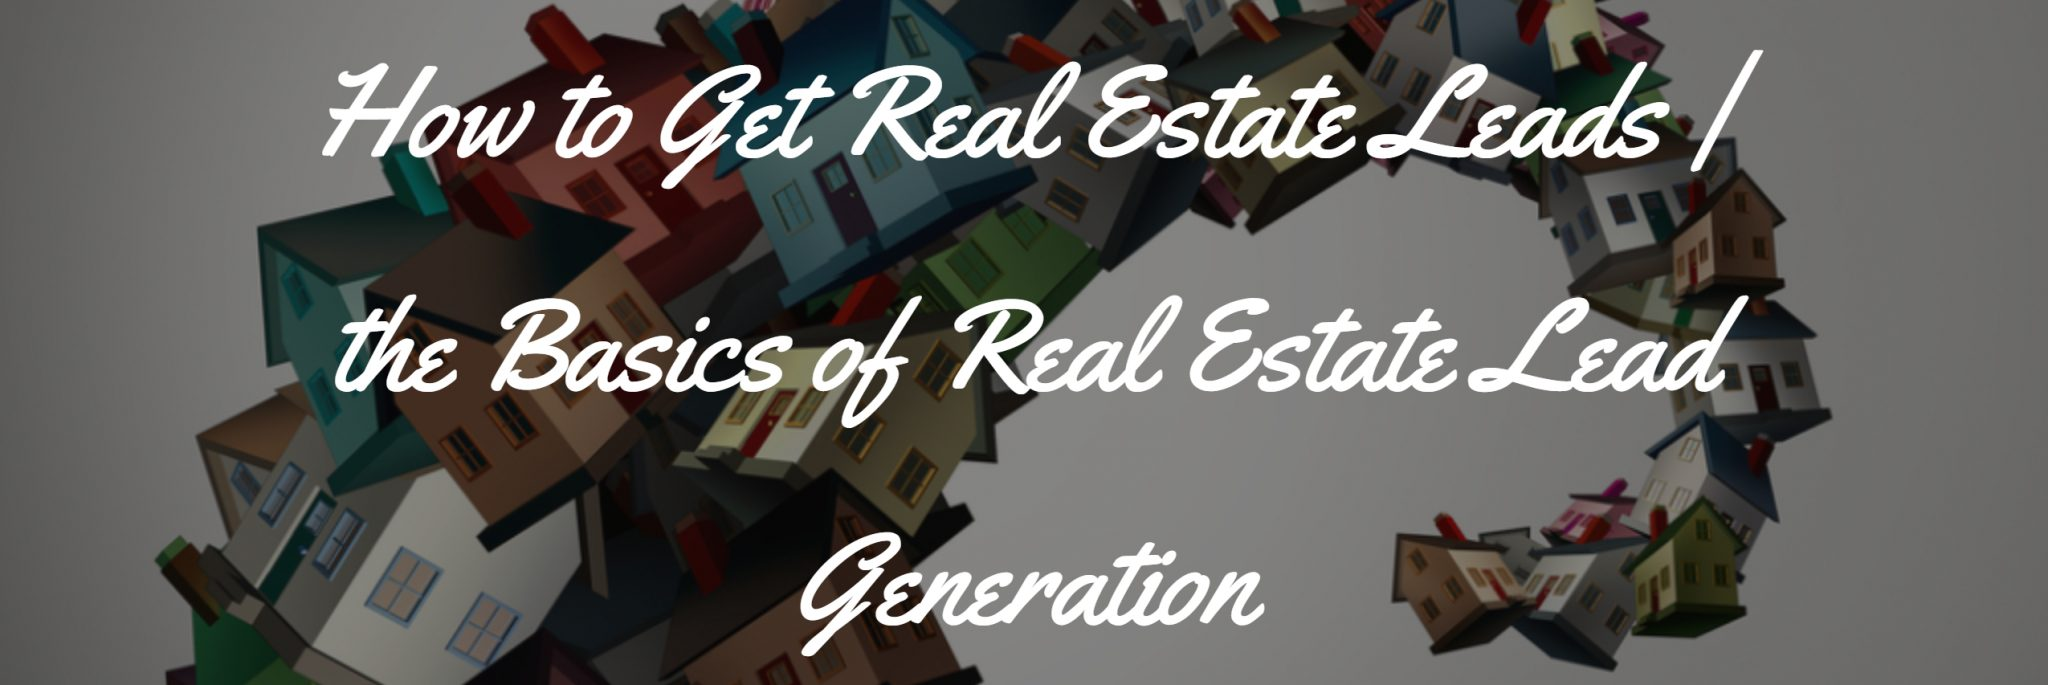 Best real estate company to work for best training for new real estate agents real estate agent coaching real estate agent training best real estate company in Los Angeles (16)